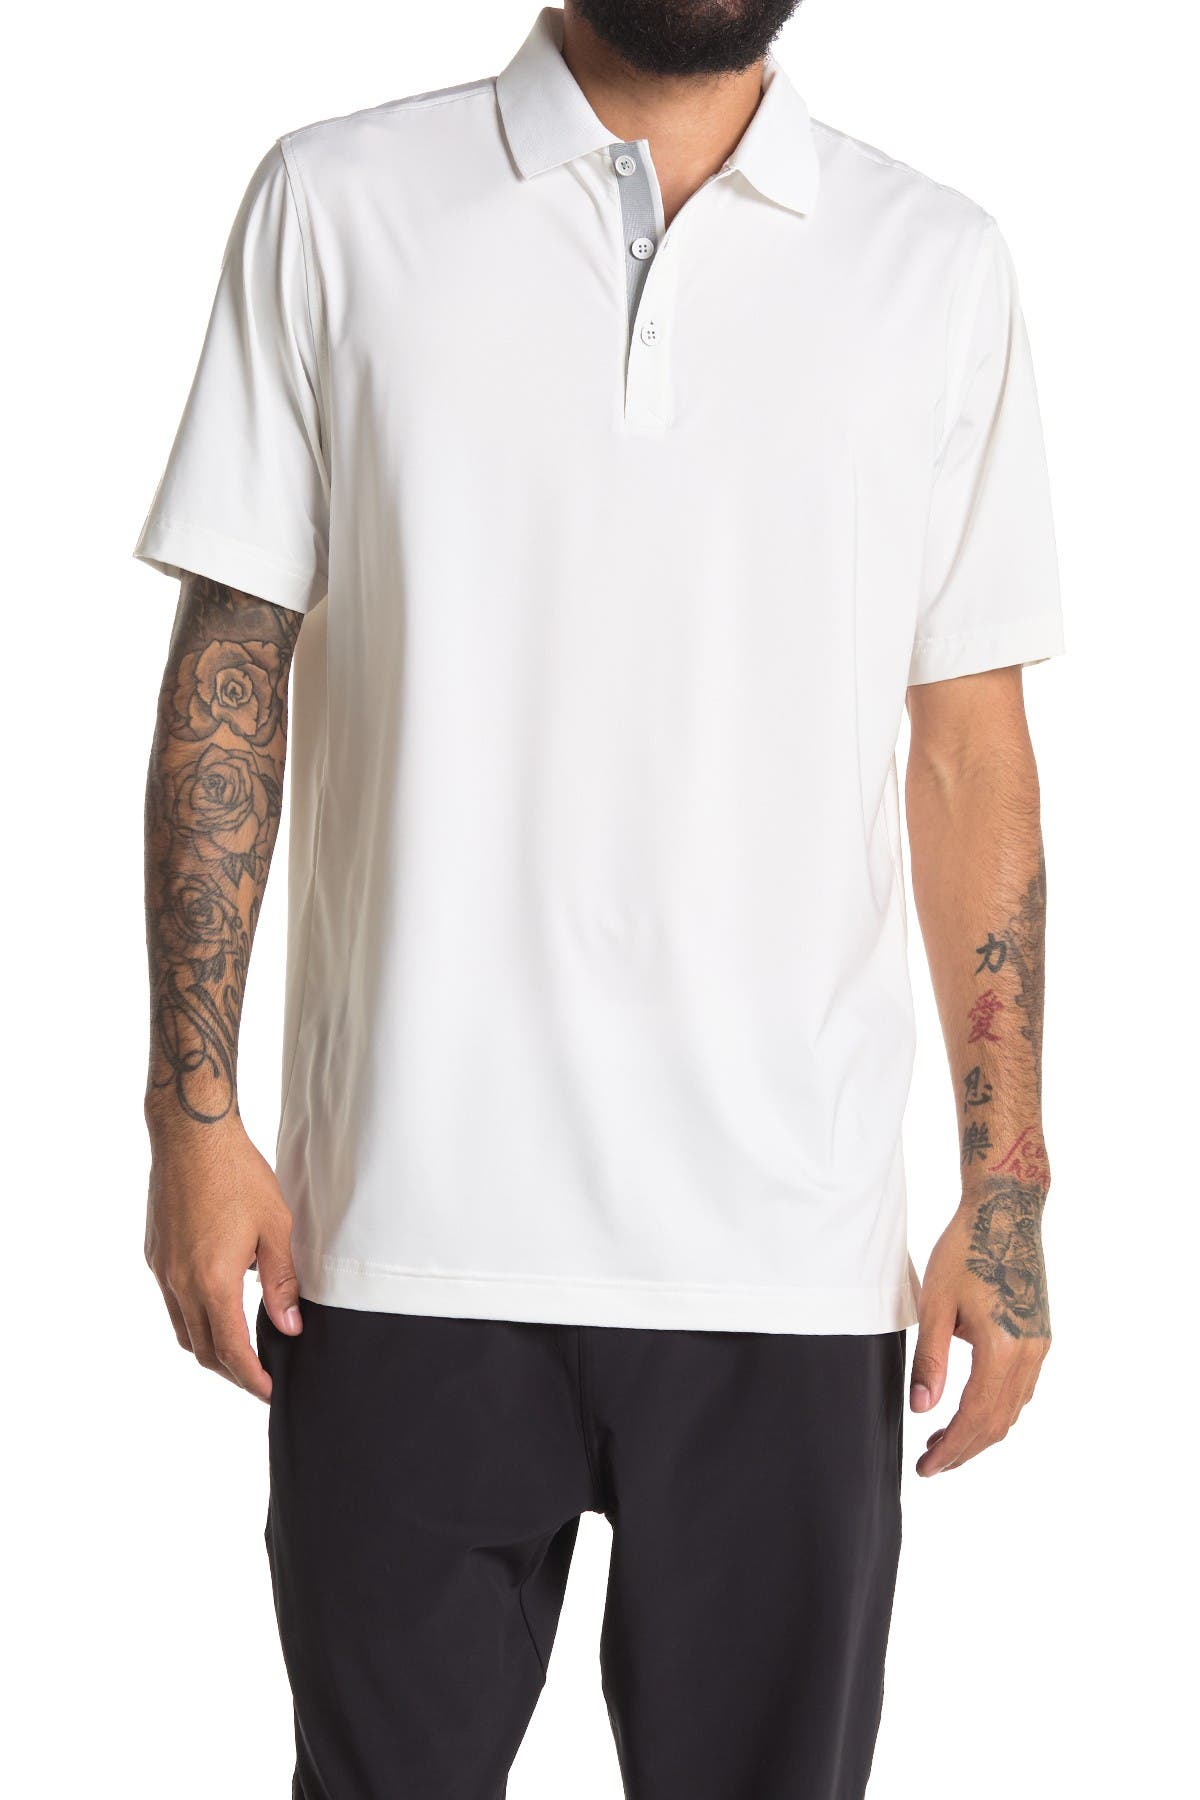 Image of Adidas Golf Adipure Essential Polo